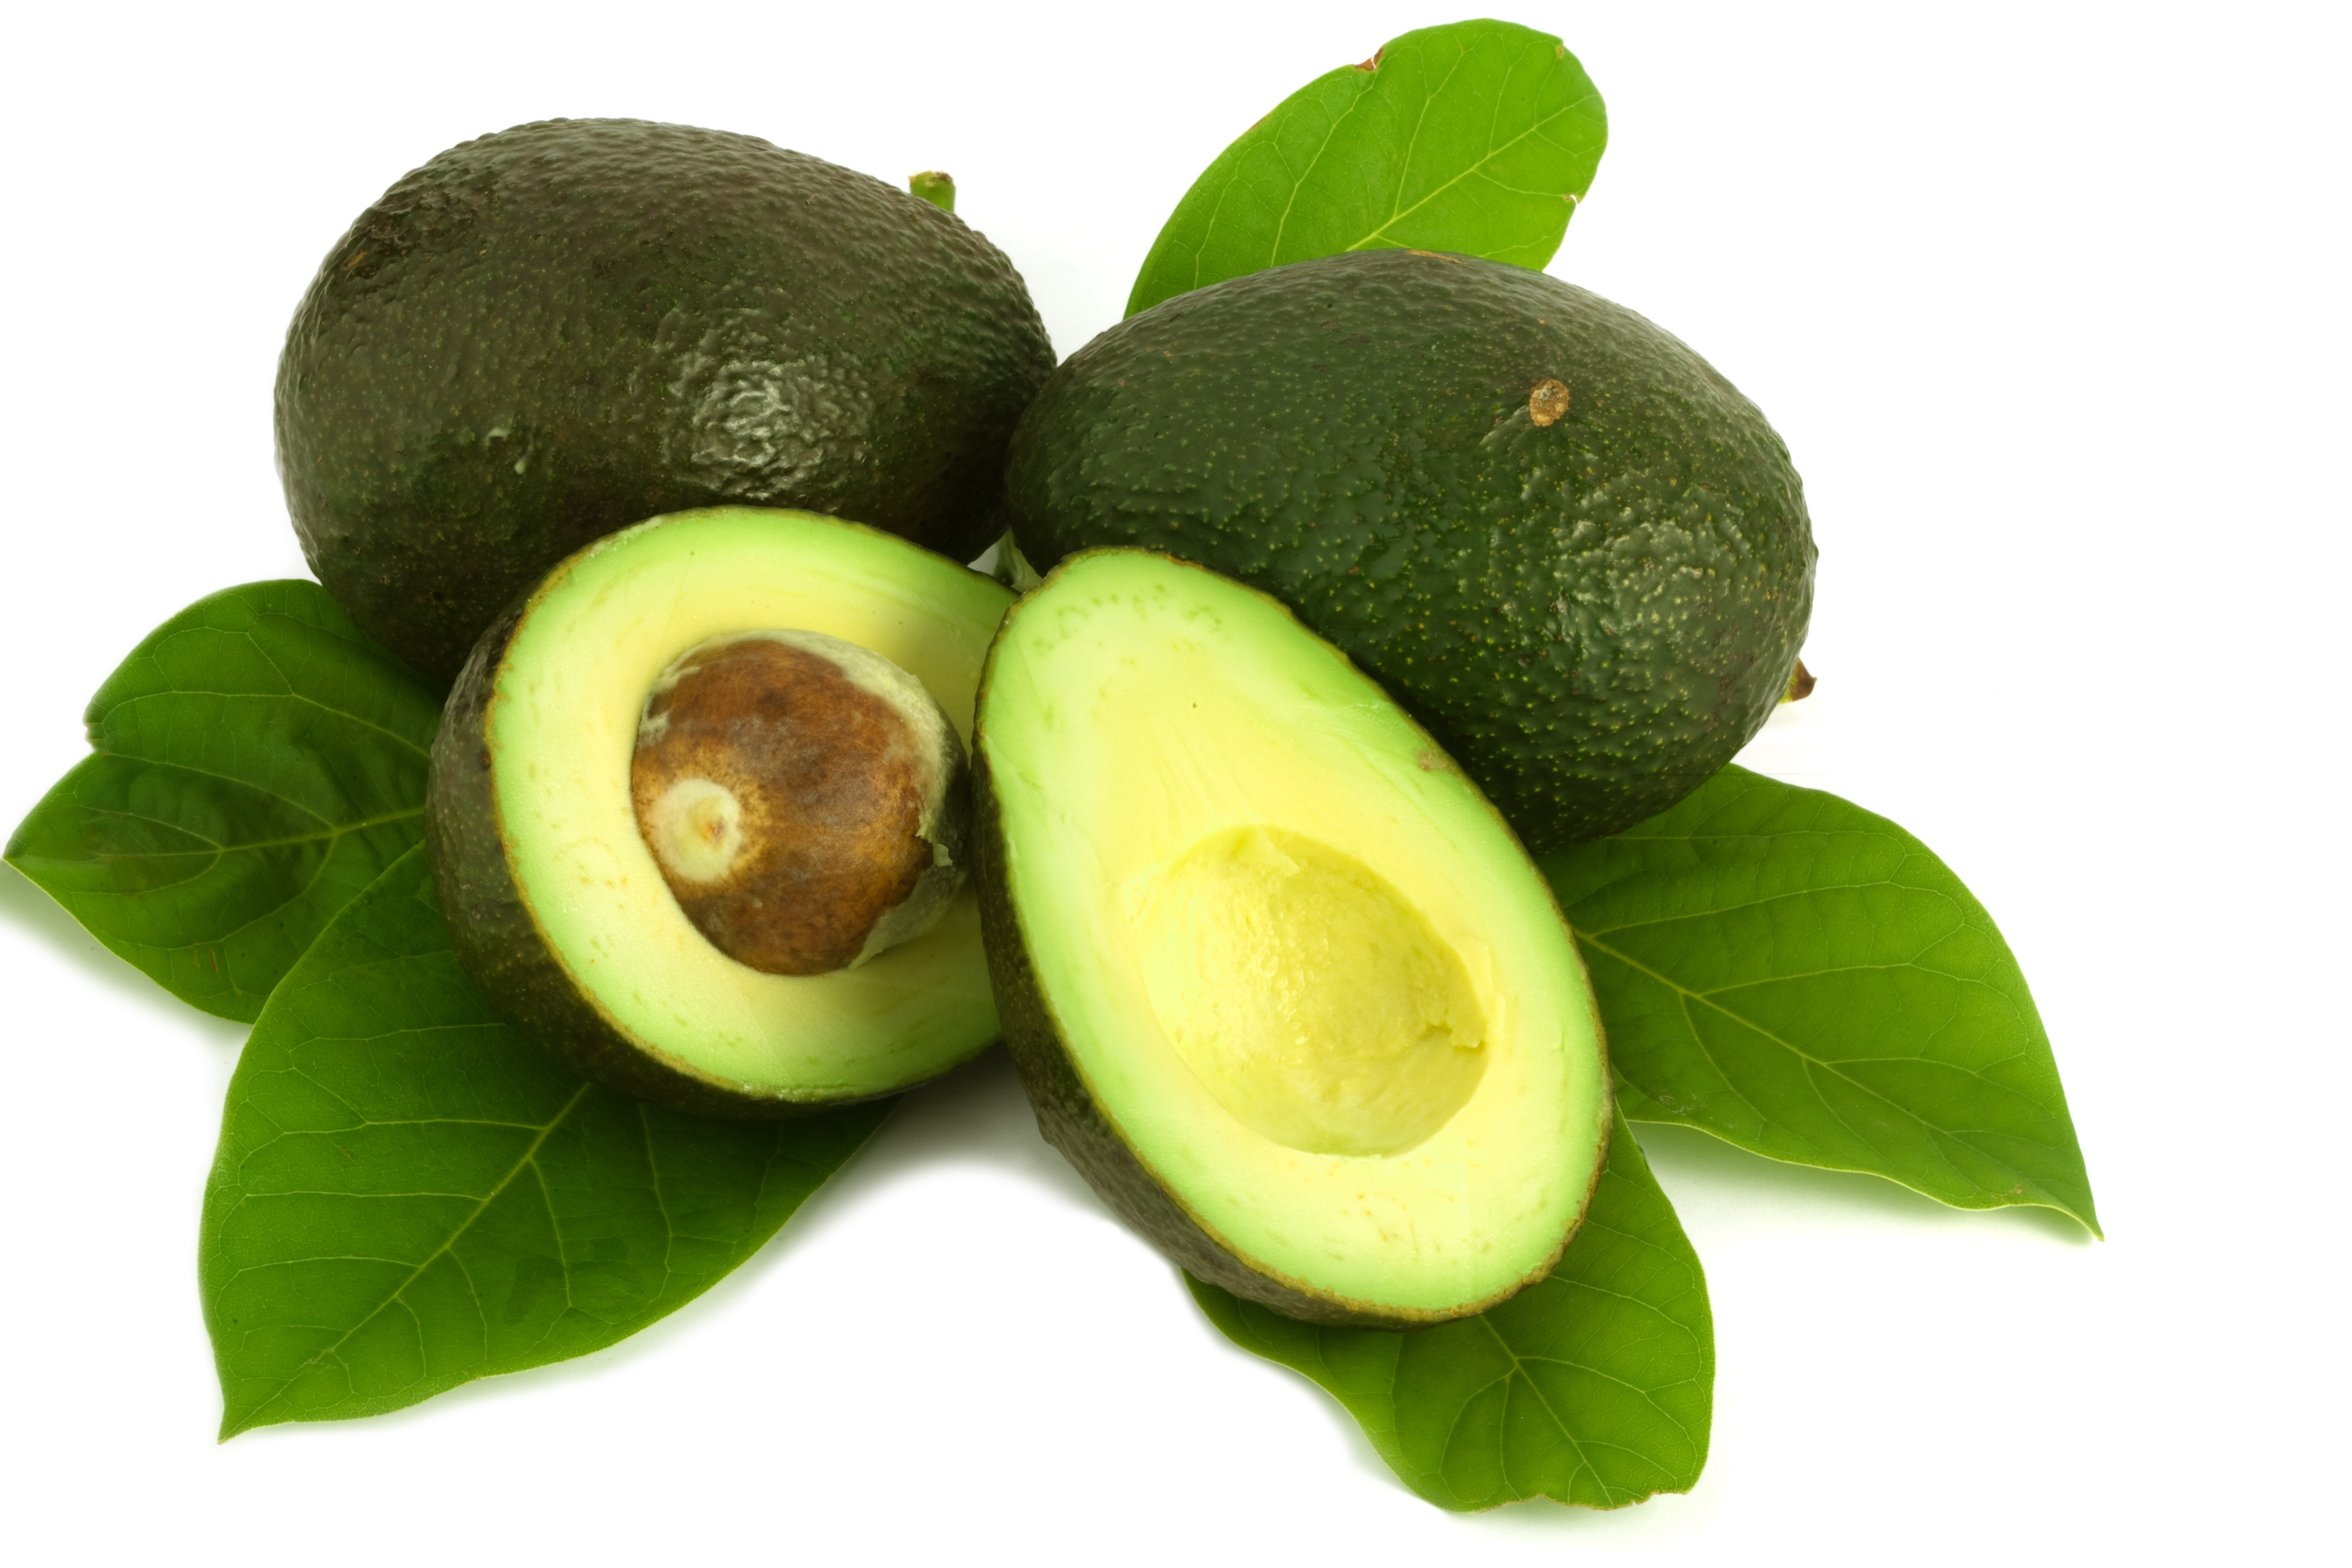 avocados are a nutrient rich snack